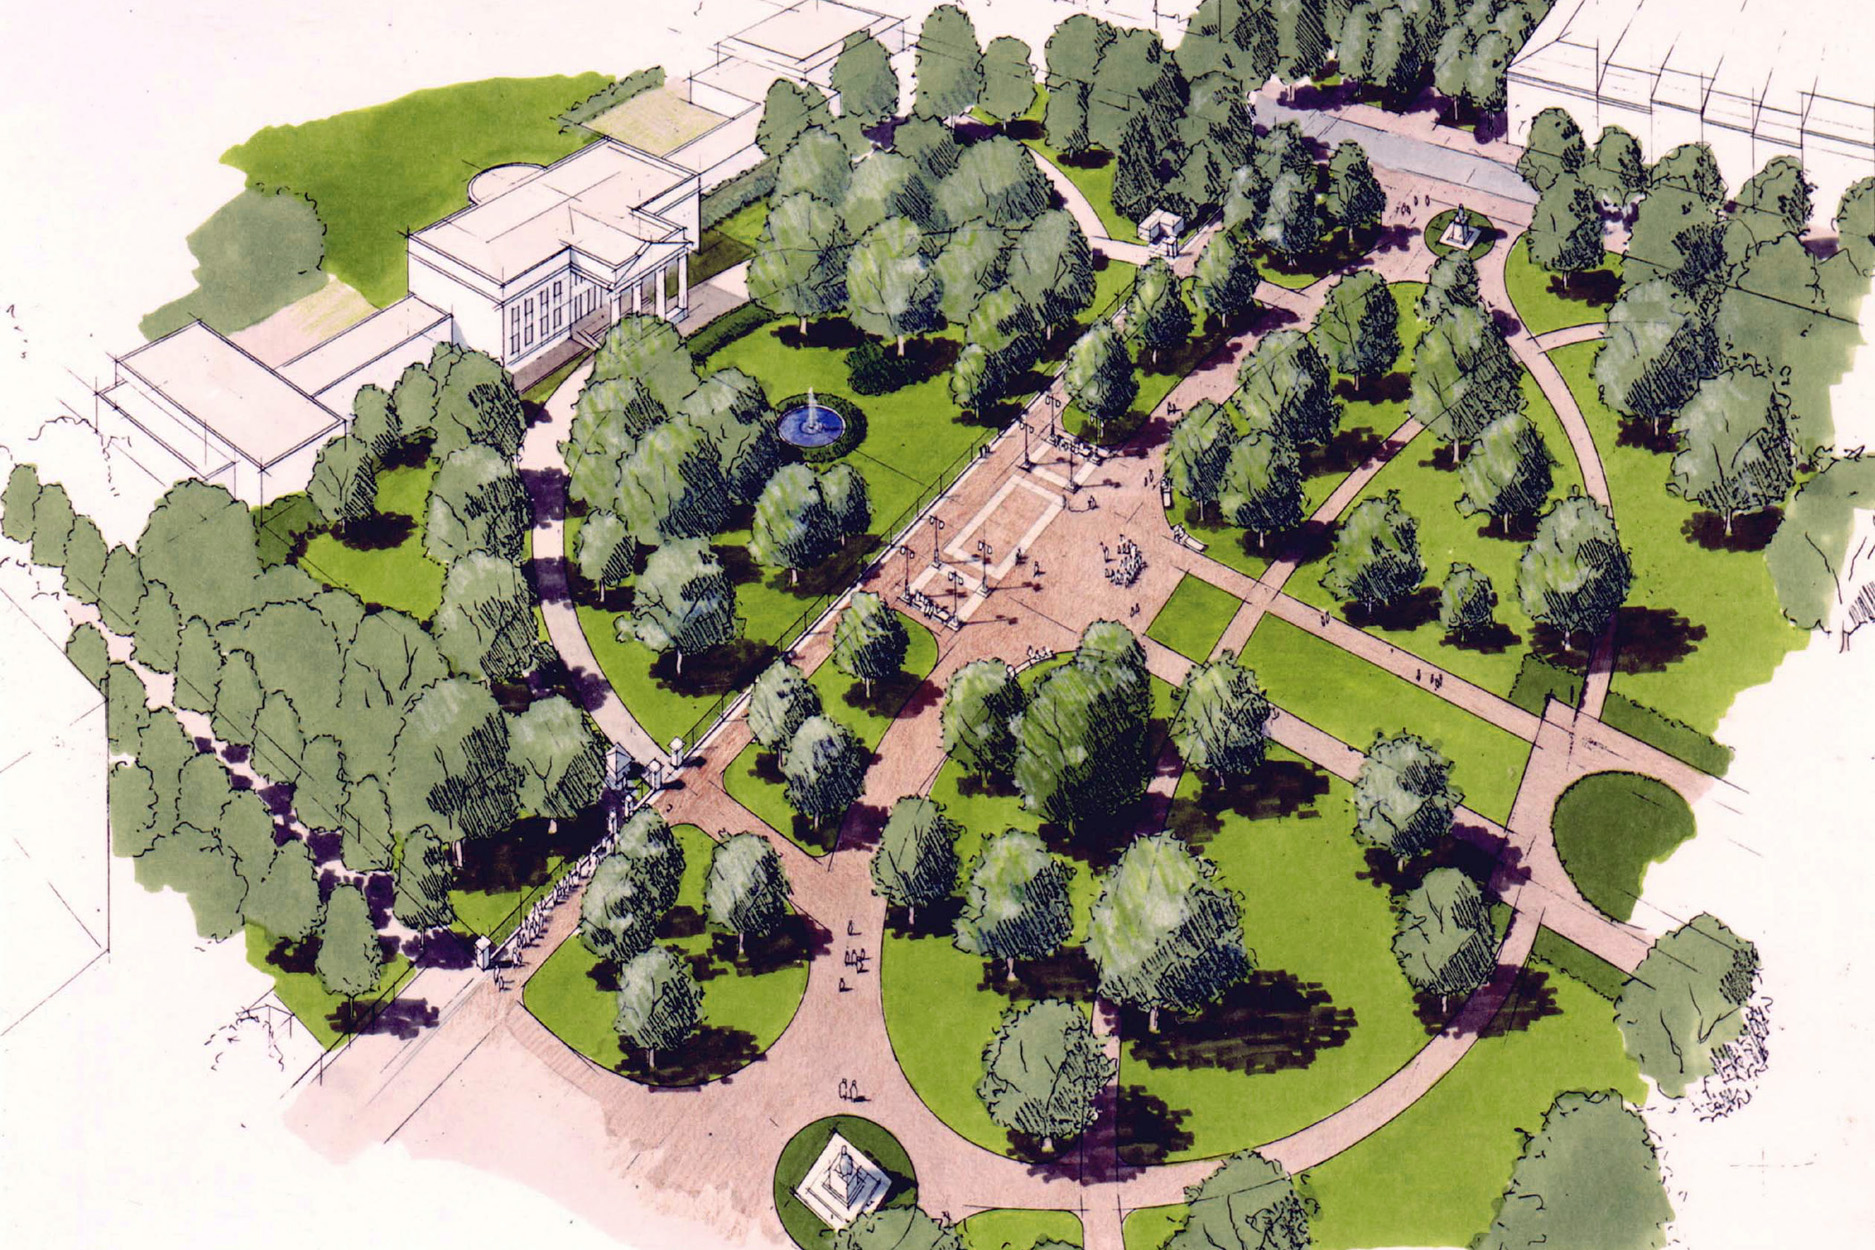 white House urban design landscape architecture